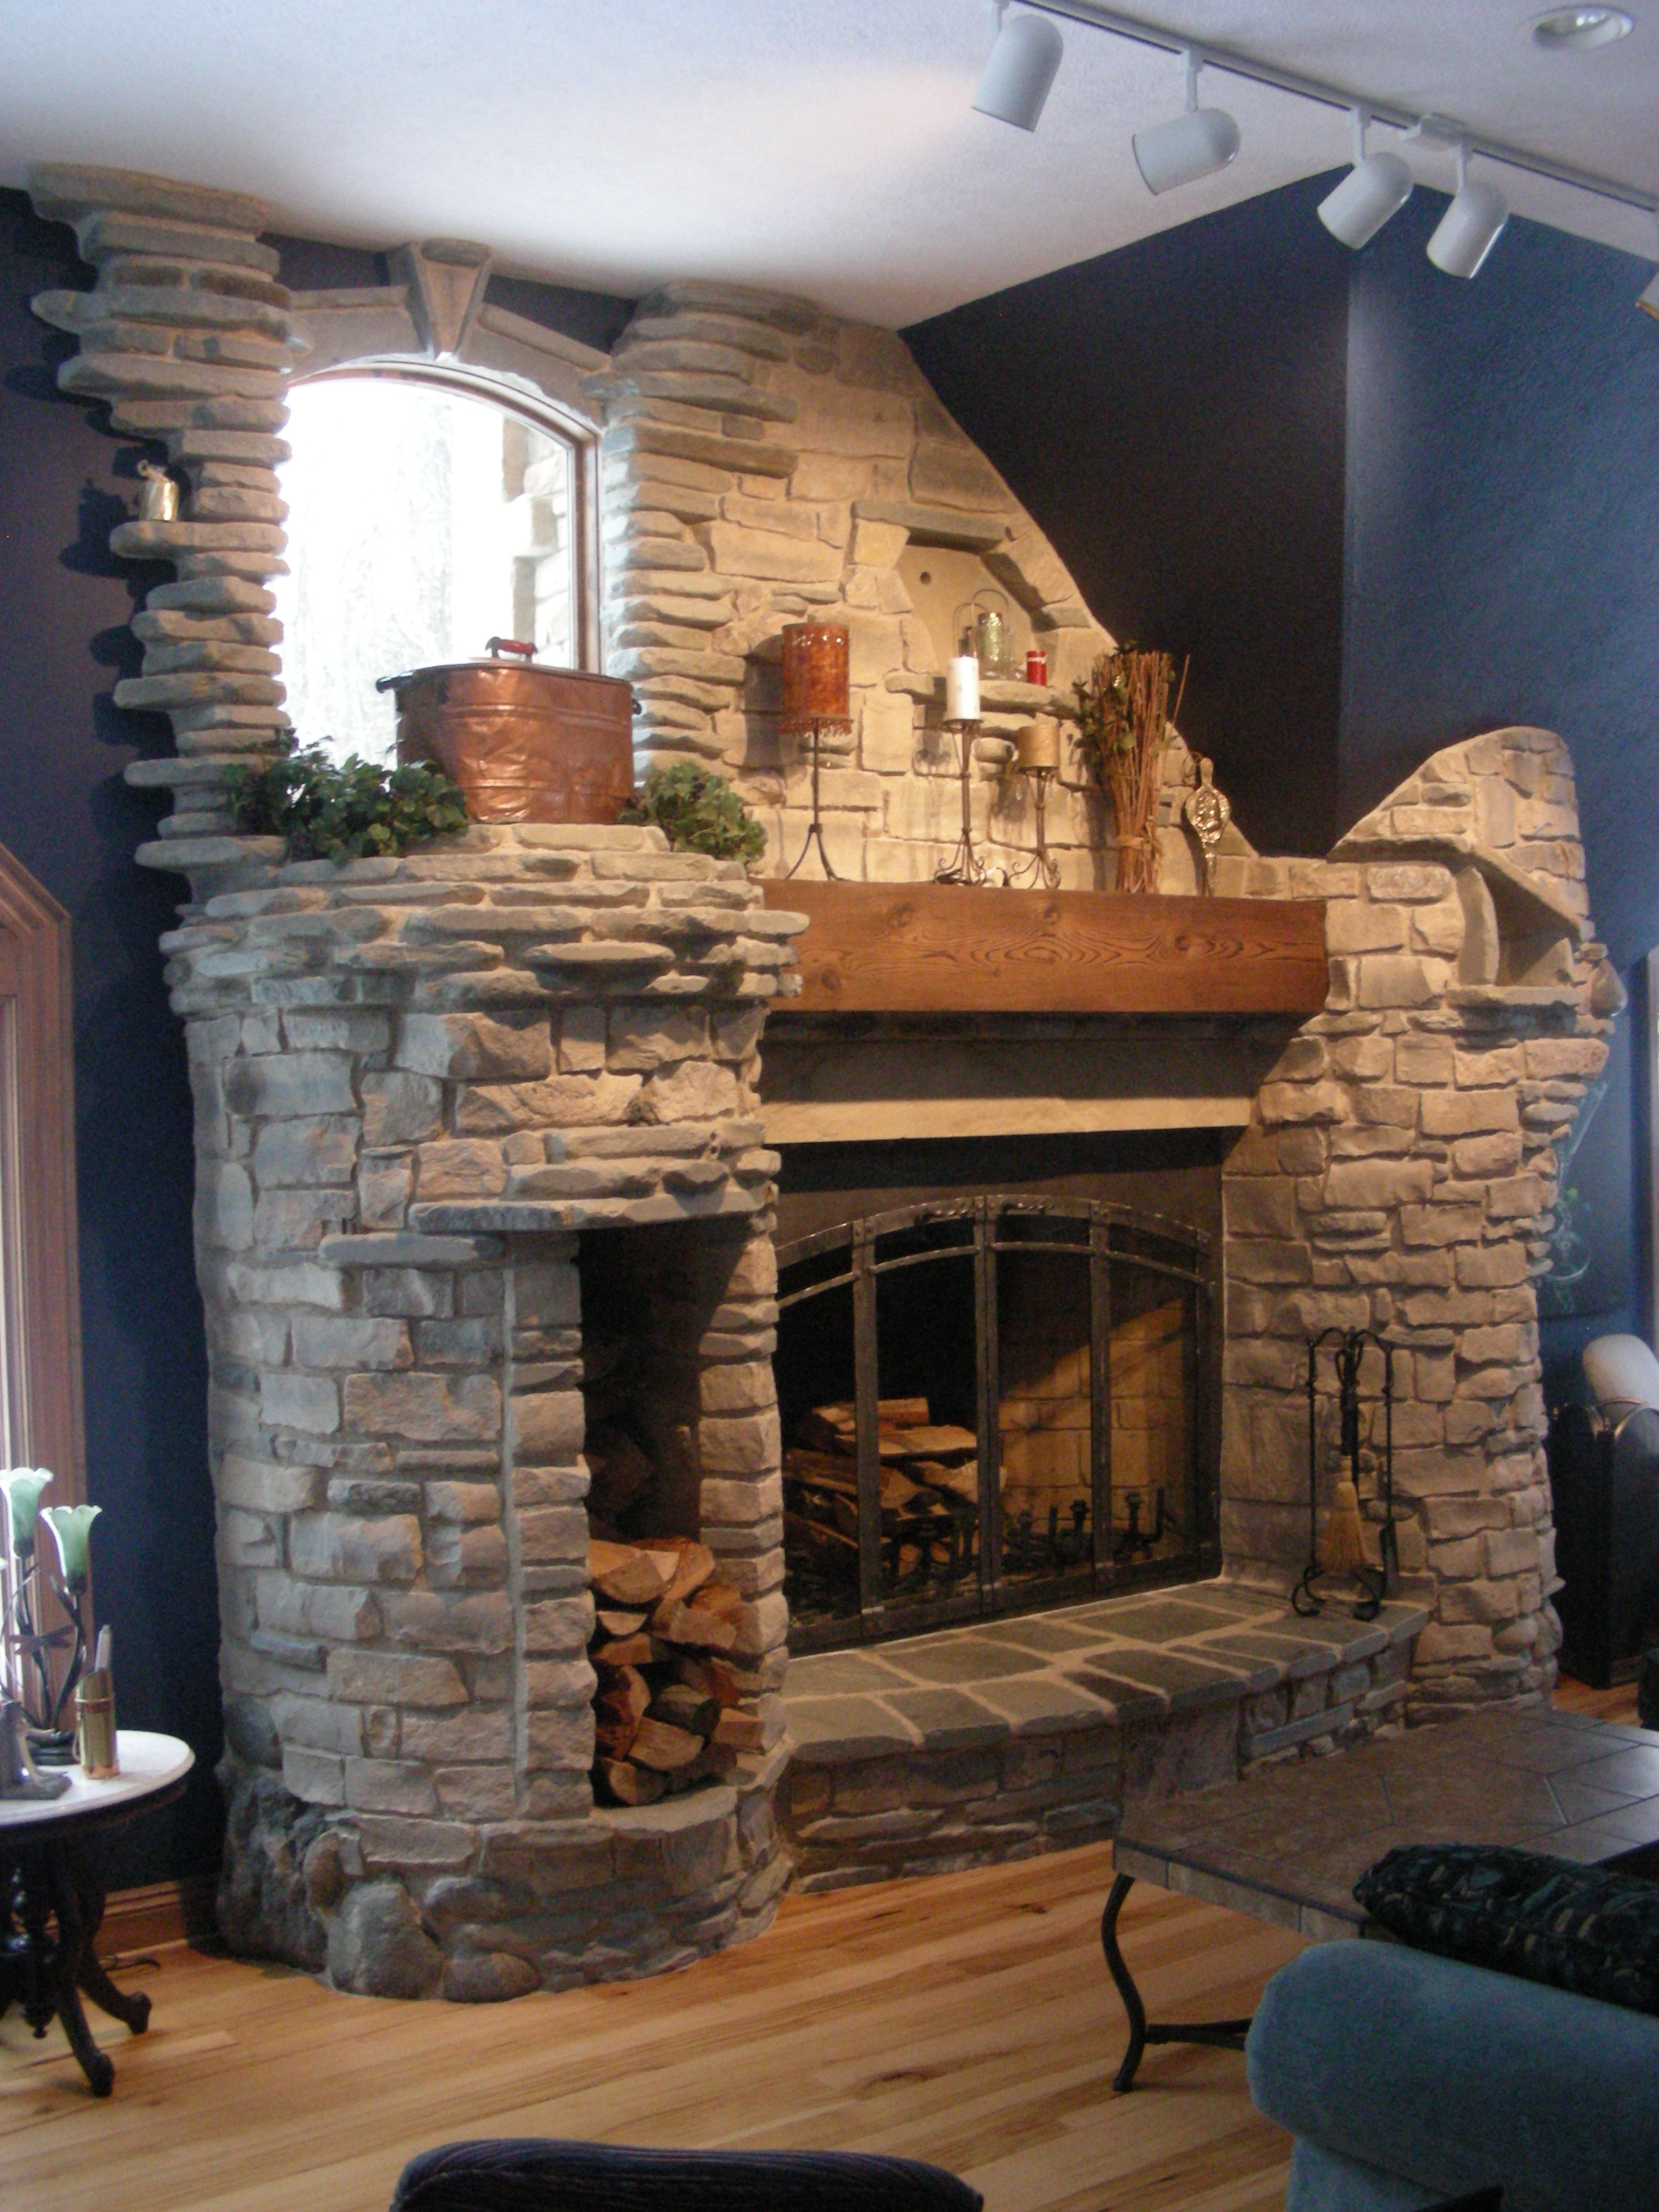 Rumford fireplace Natural stone matched with blue wall and wooden floor ideas